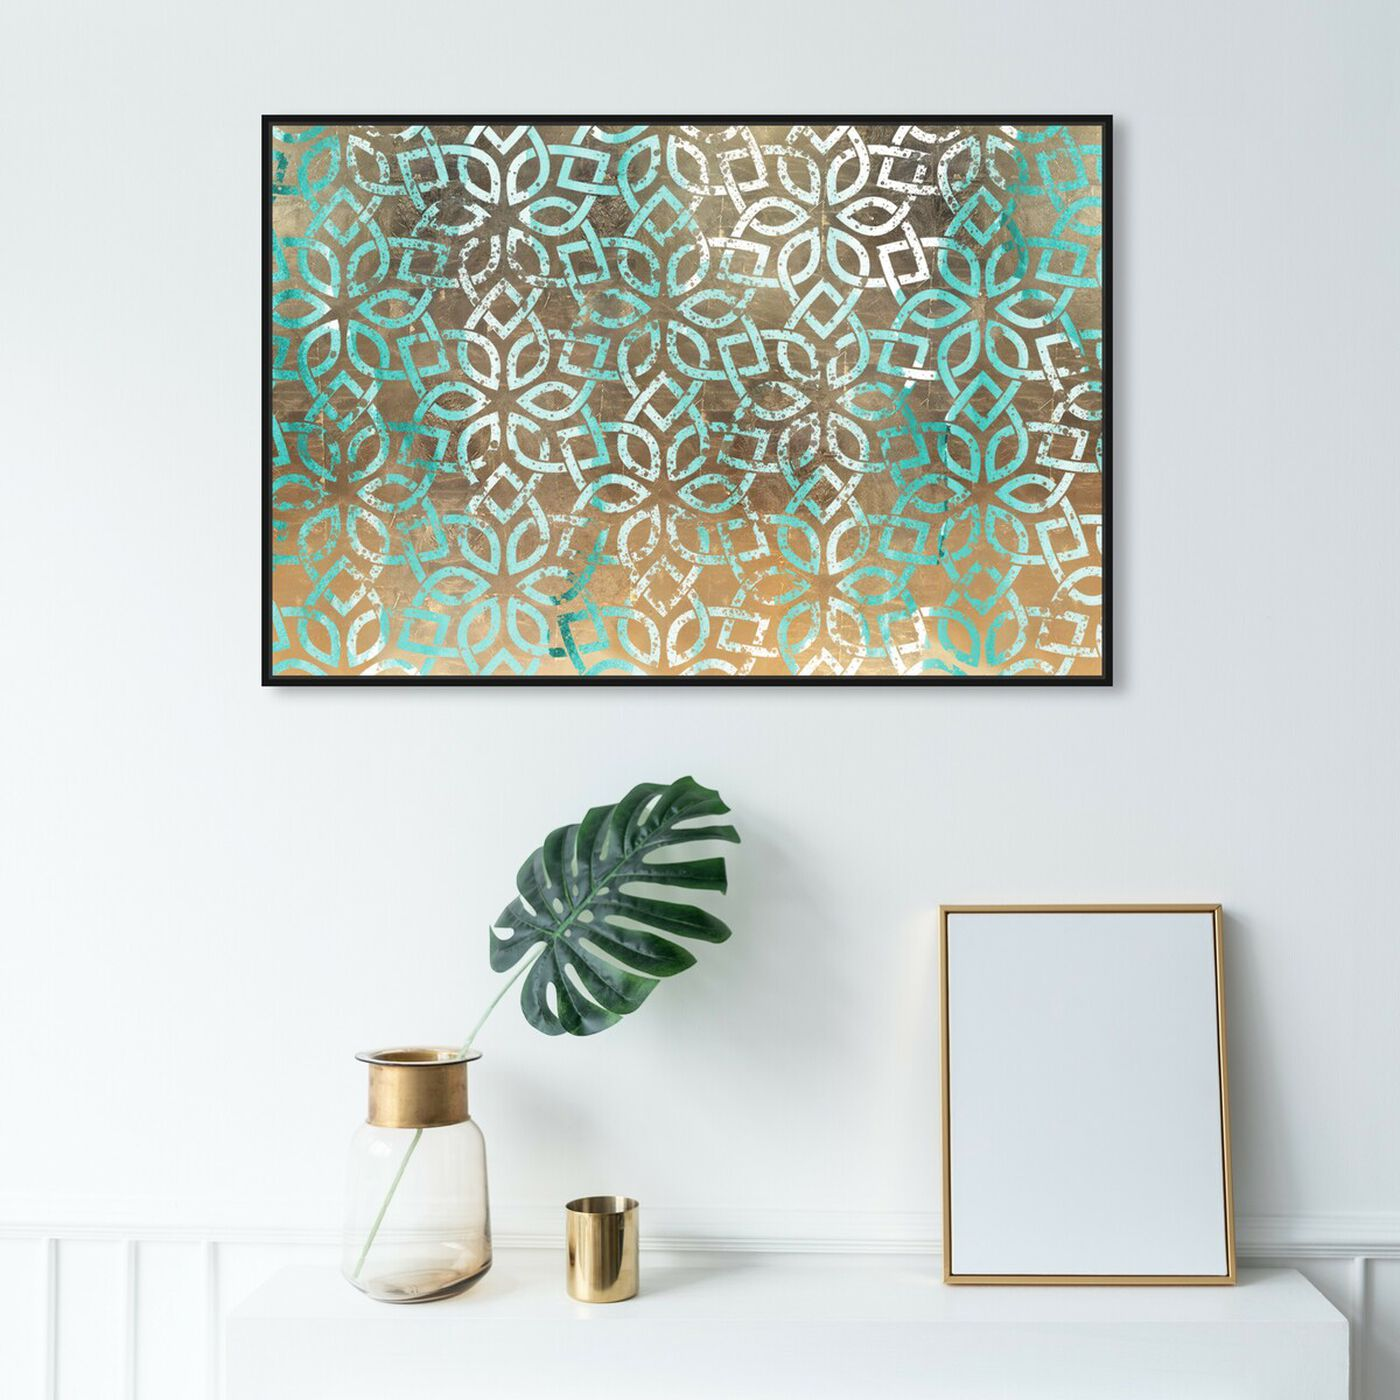 Hanging view of Regal Jade Lattice featuring abstract and patterns art.